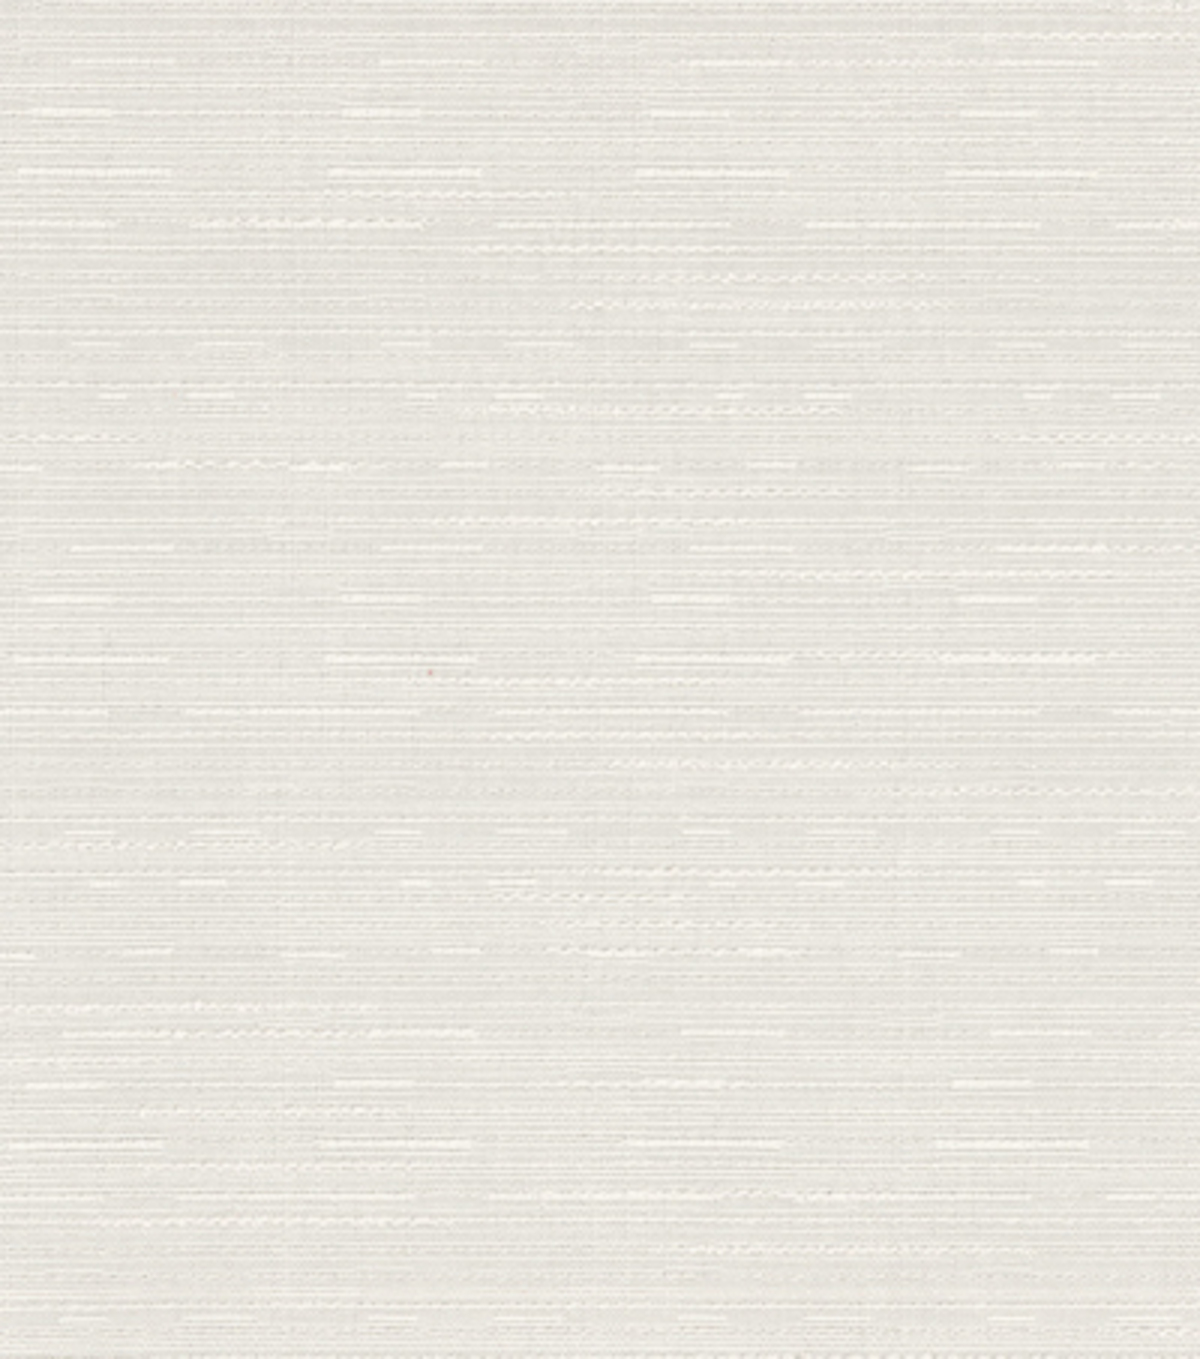 Home Decor 8\u0022x8\u0022 Fabric Swatch-Upholstery Fabric-Waverly Alize/Alabaster